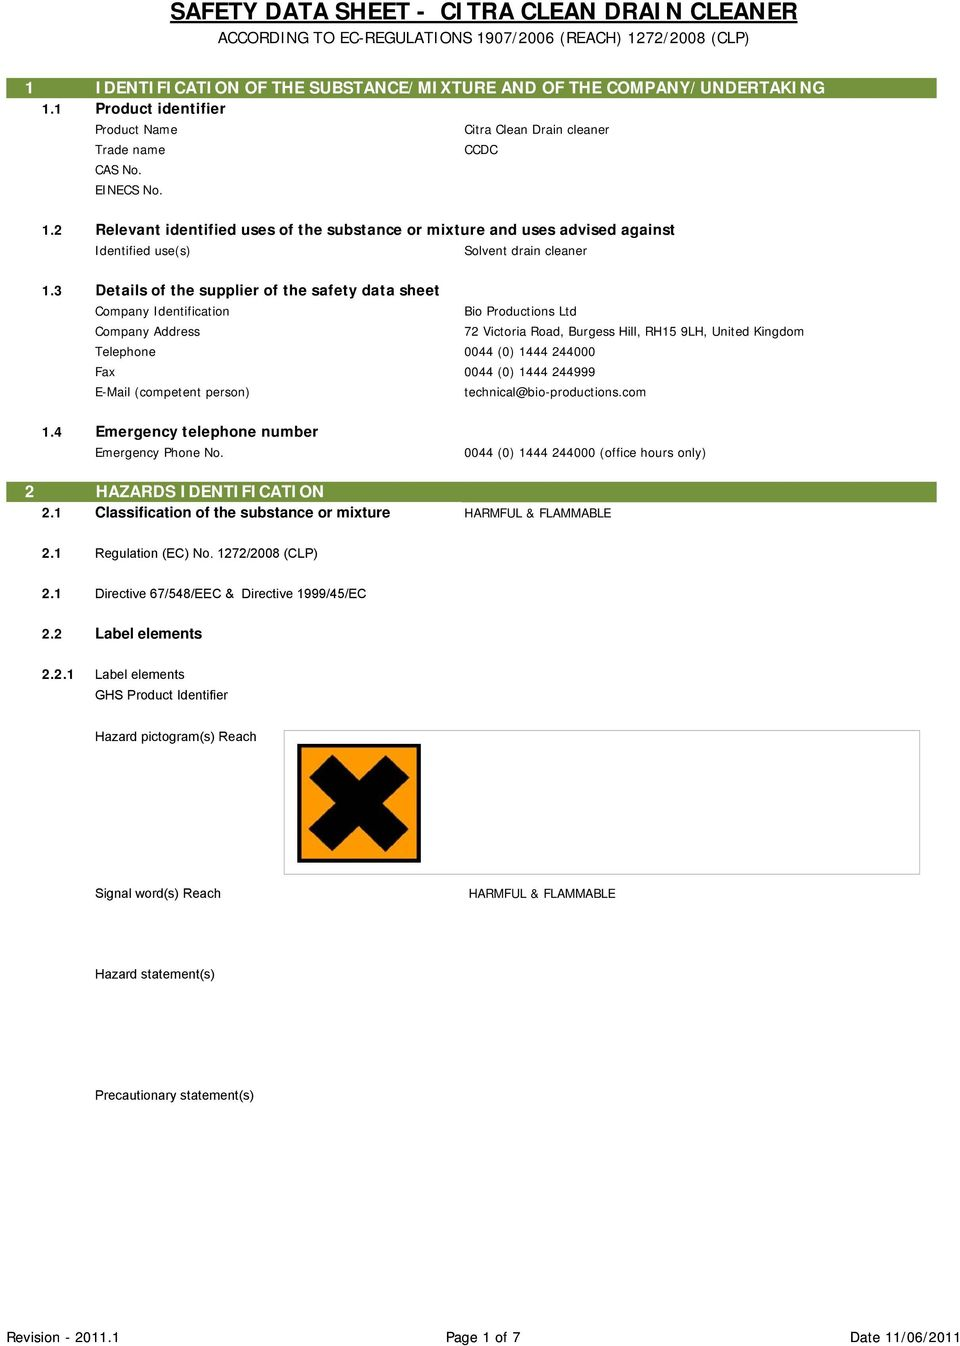 3 Details of the supplier of the safety data sheet Company Identification Company Address Telephone Fax E-Mail (competent person) Bio Productions Ltd 72 Victoria Road, Burgess Hill, RH15 9LH, United